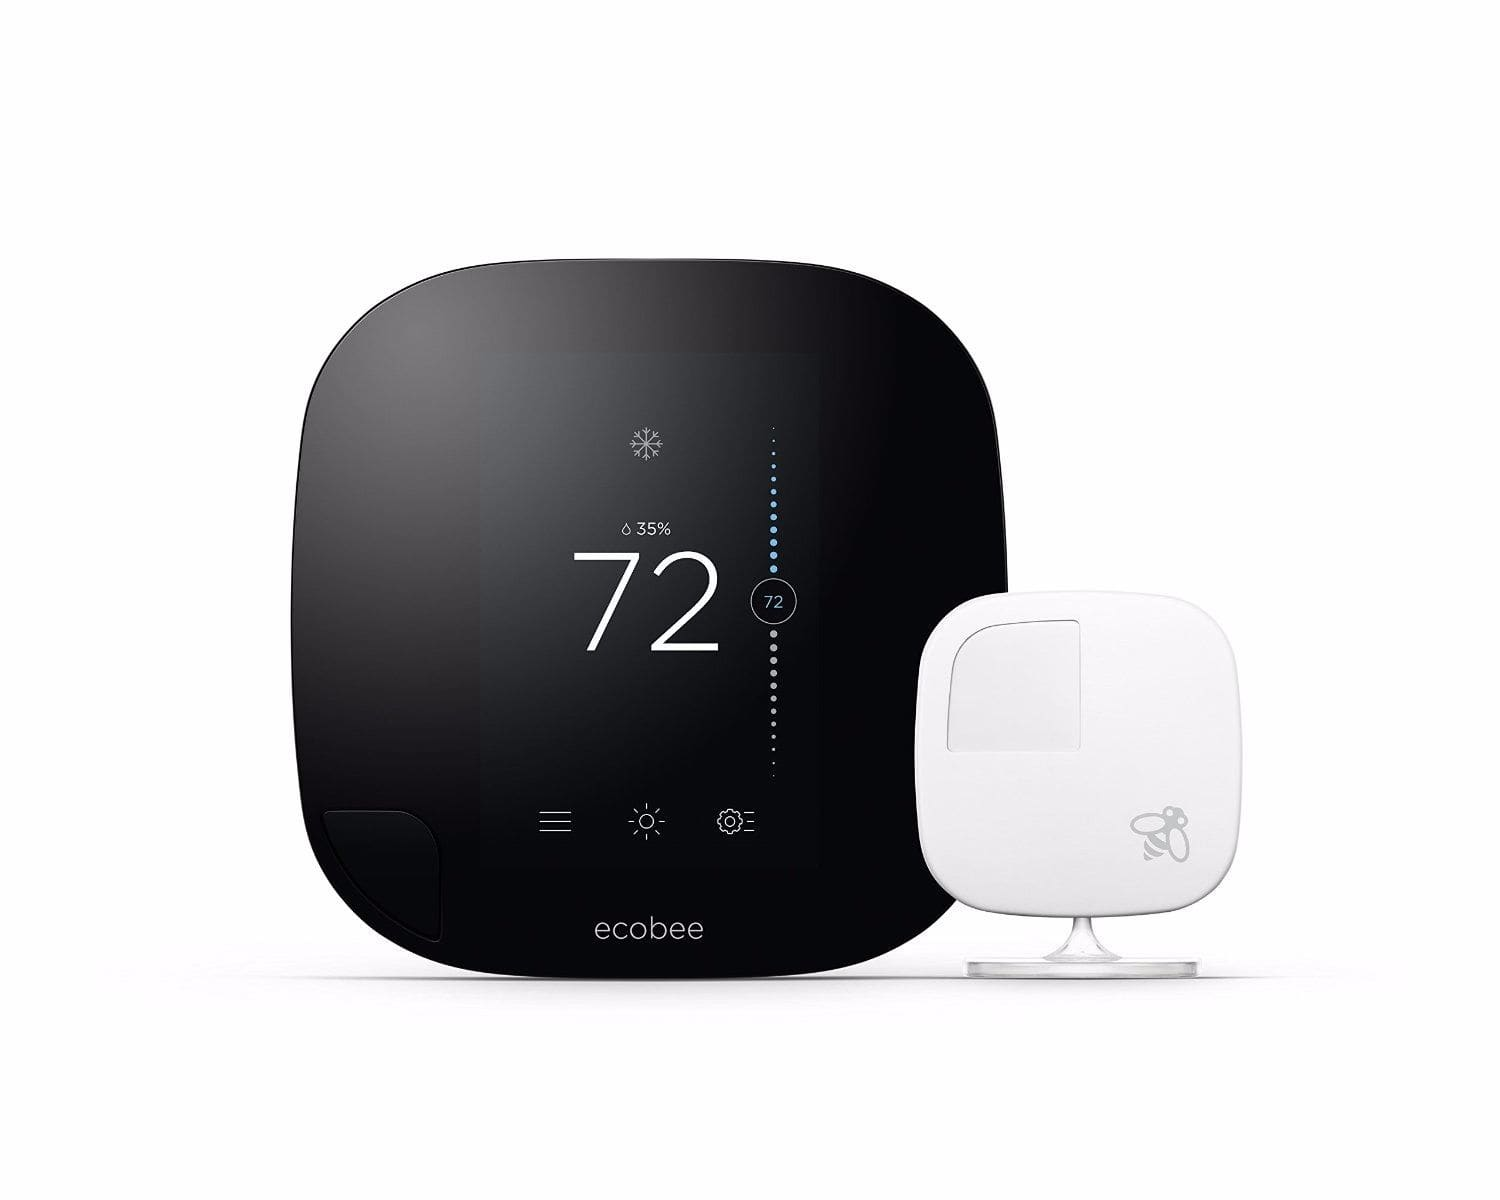 ecobee3 Smarter Wi-Fi Thermostat with Remote Sensor (2nd Gen) $190 + Free Shipping (eBay Daily Deal)